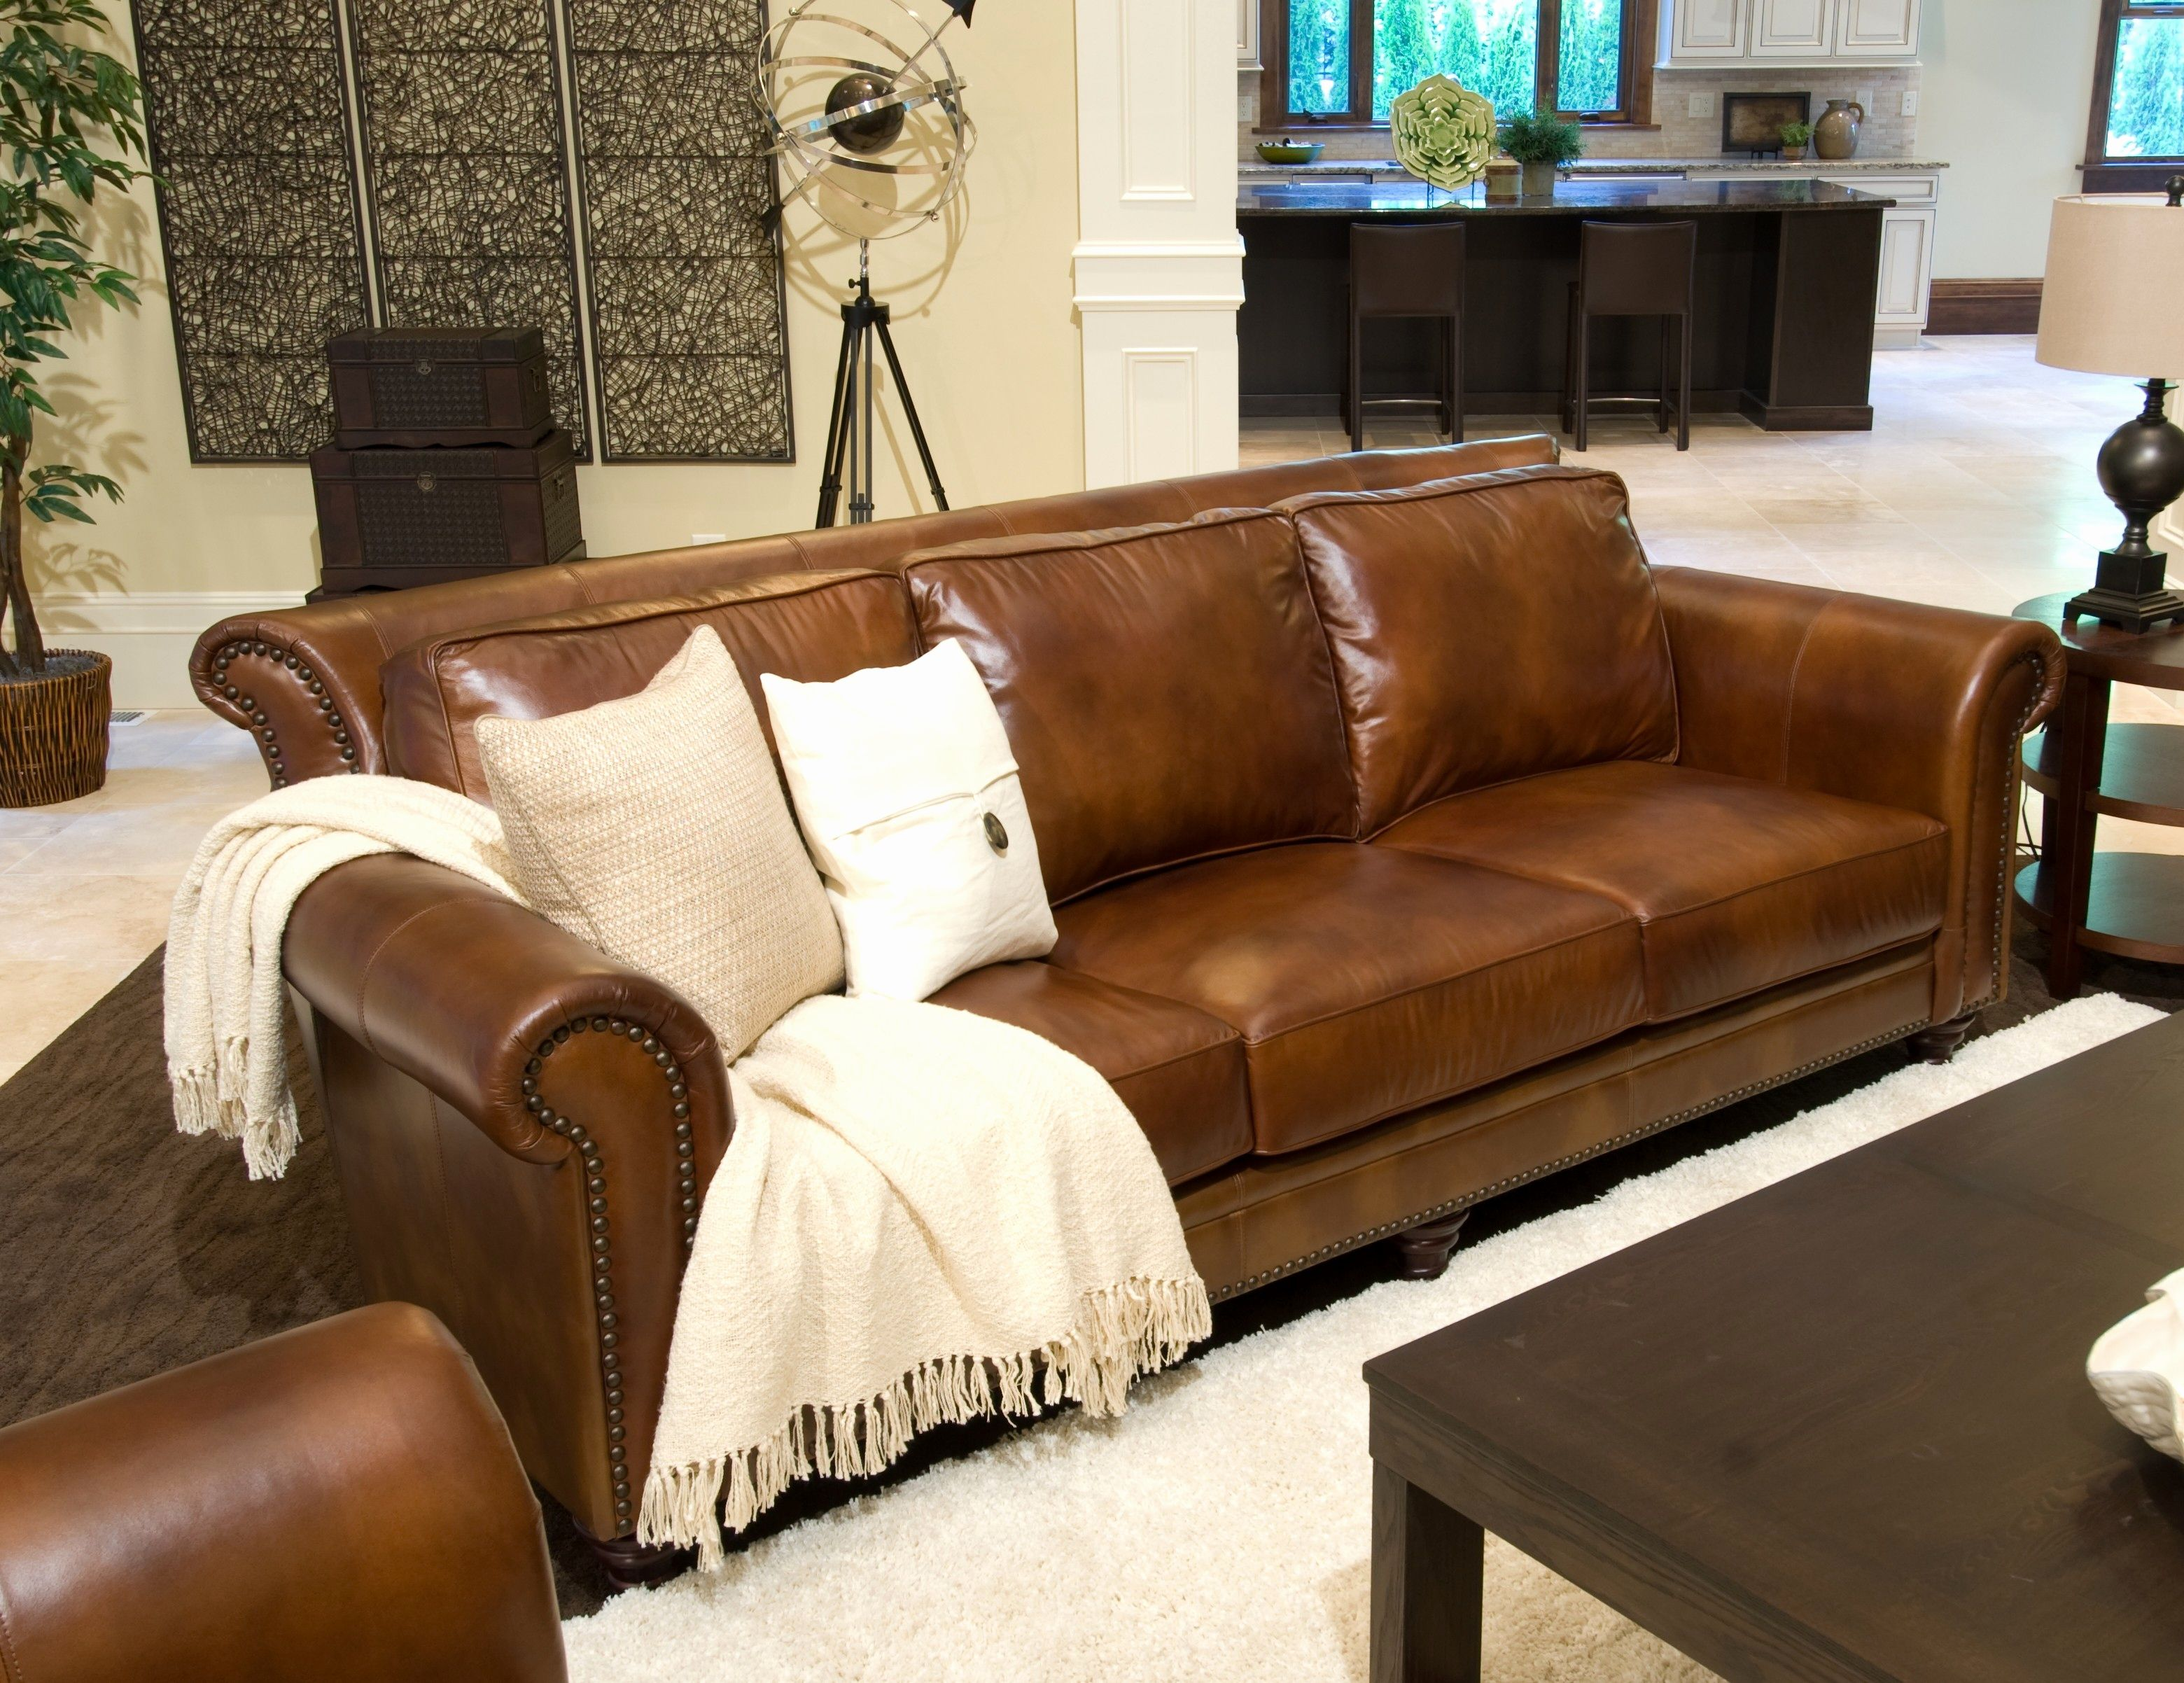 Ideas Leather Sofa Clearance Pictures Top Grain Leather Sofa Clearance Sofas Top Grain Leather Sofa Leather Sofa And Loveseat Brown Leather Furniture